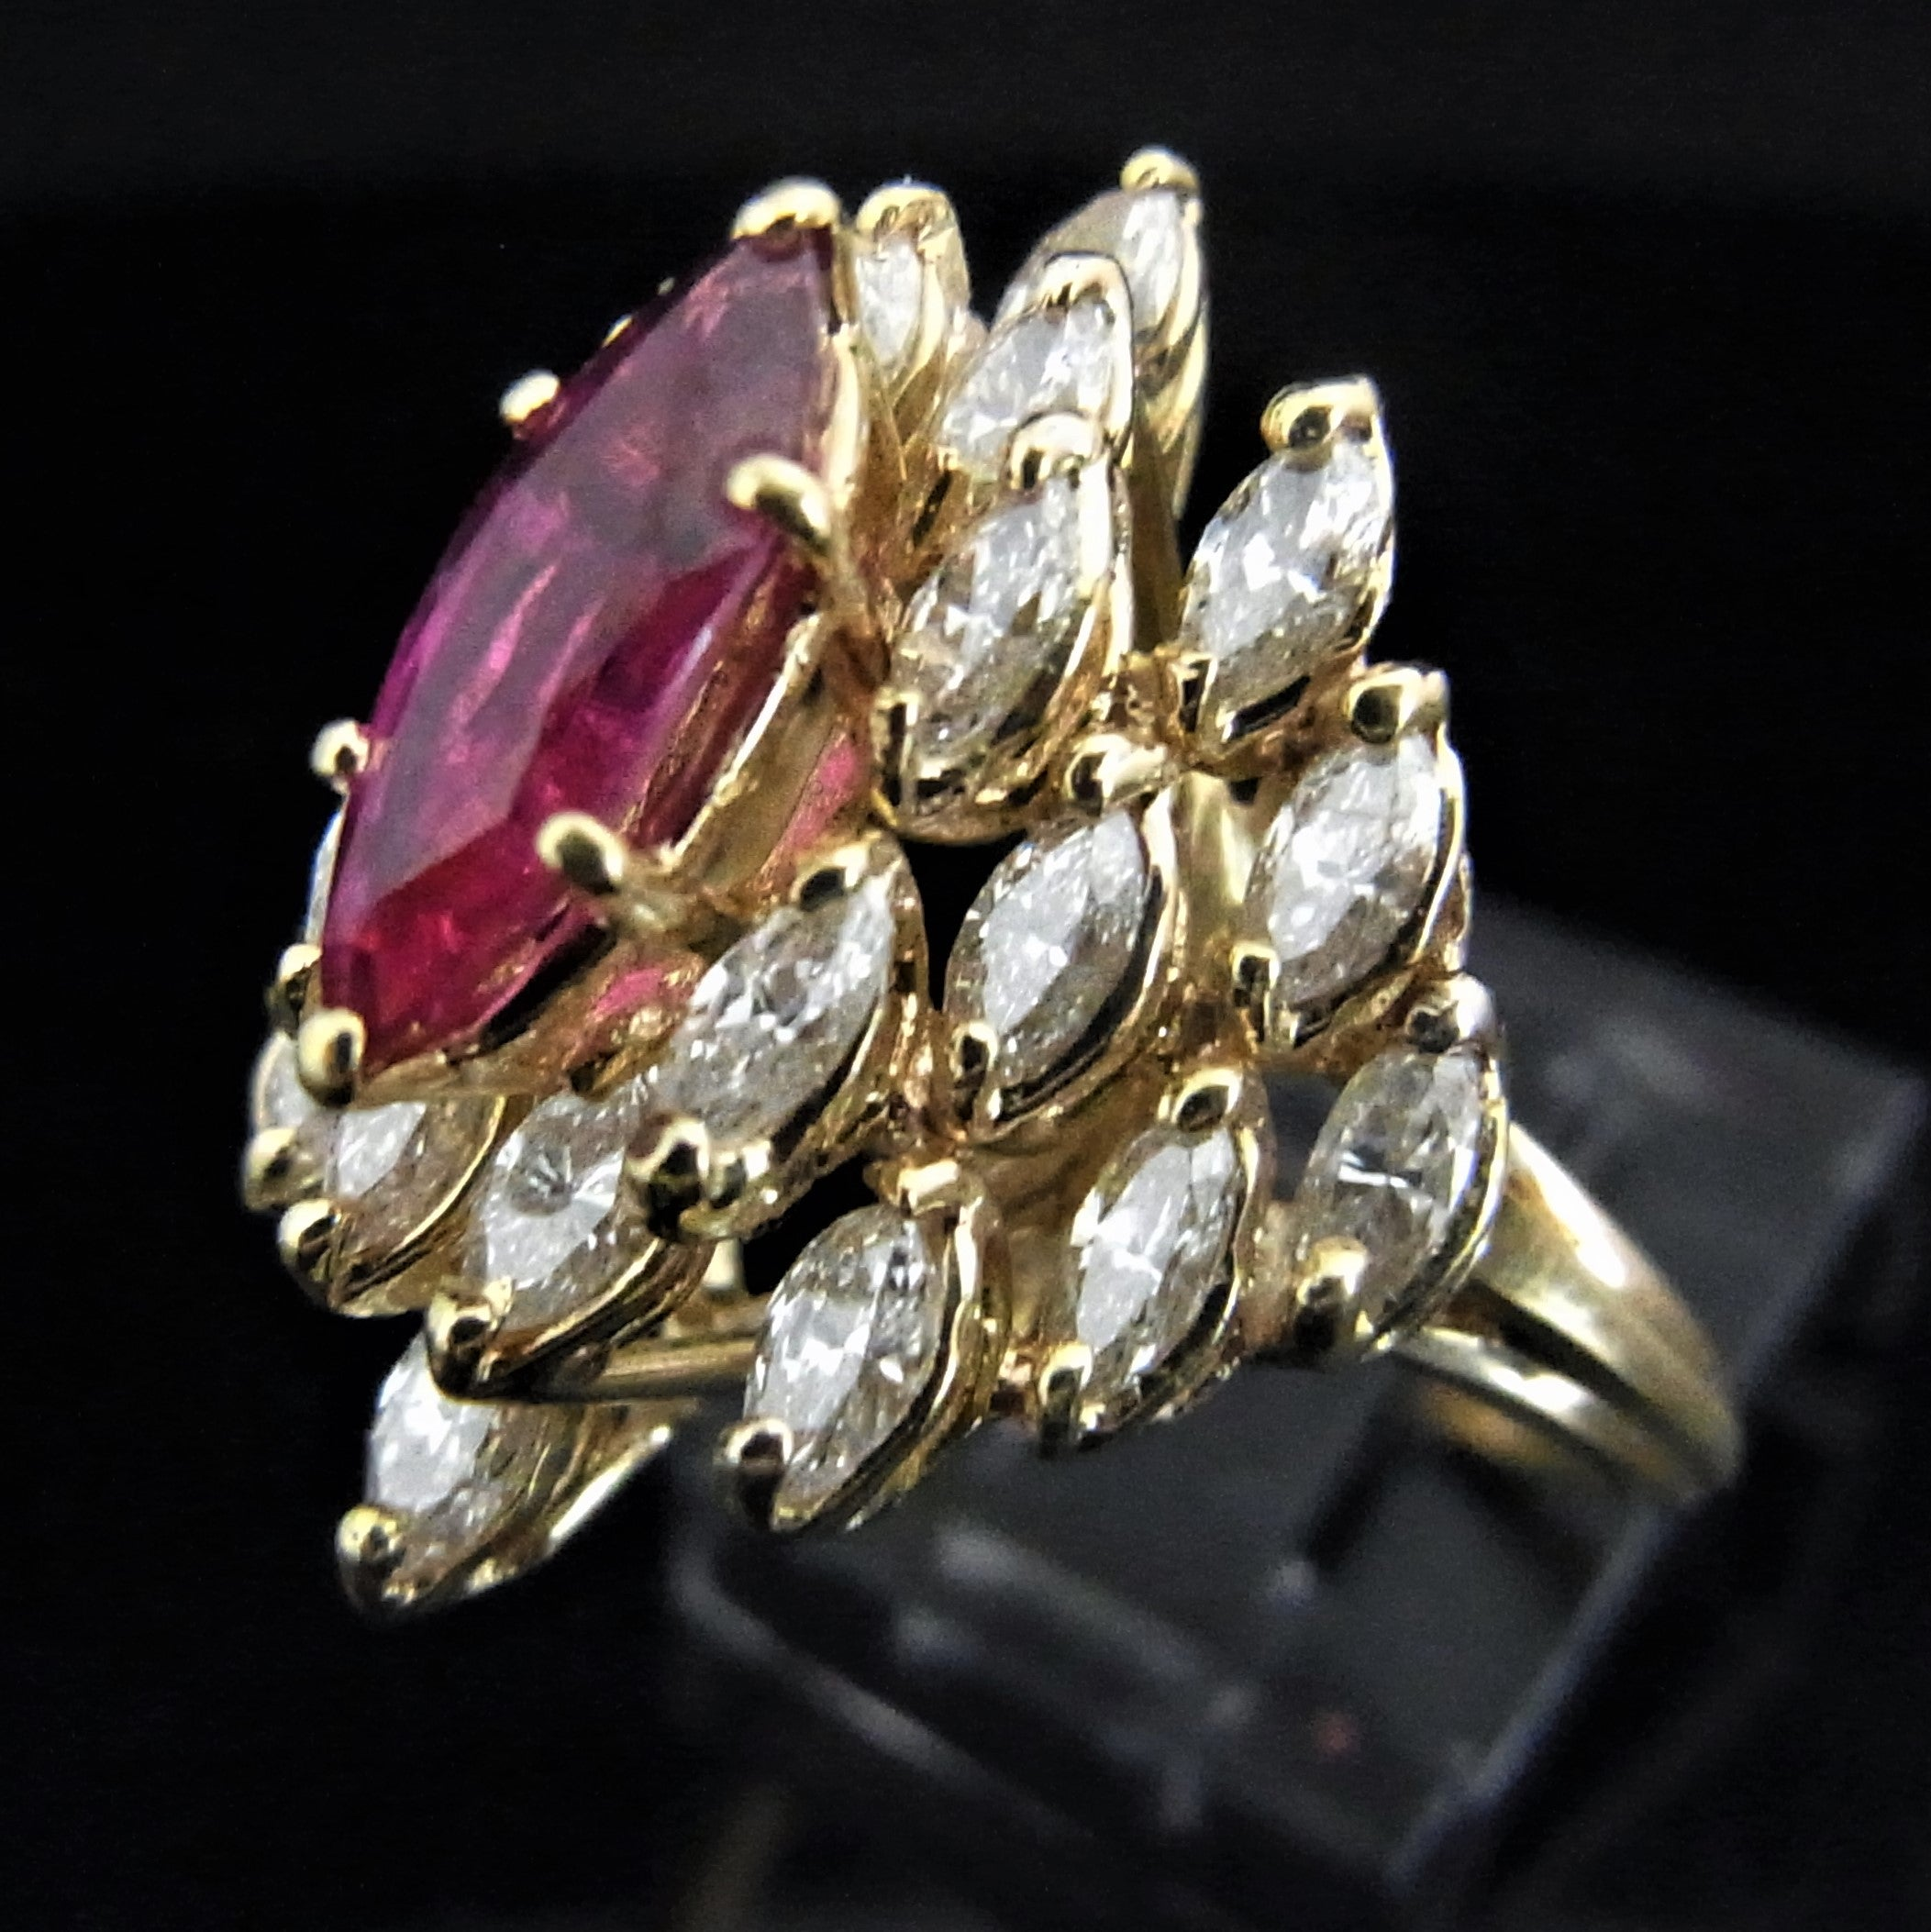 central graff ring ruby view collections bombe front of a bomb surrounded diamond pavilion pear shape featuring and top